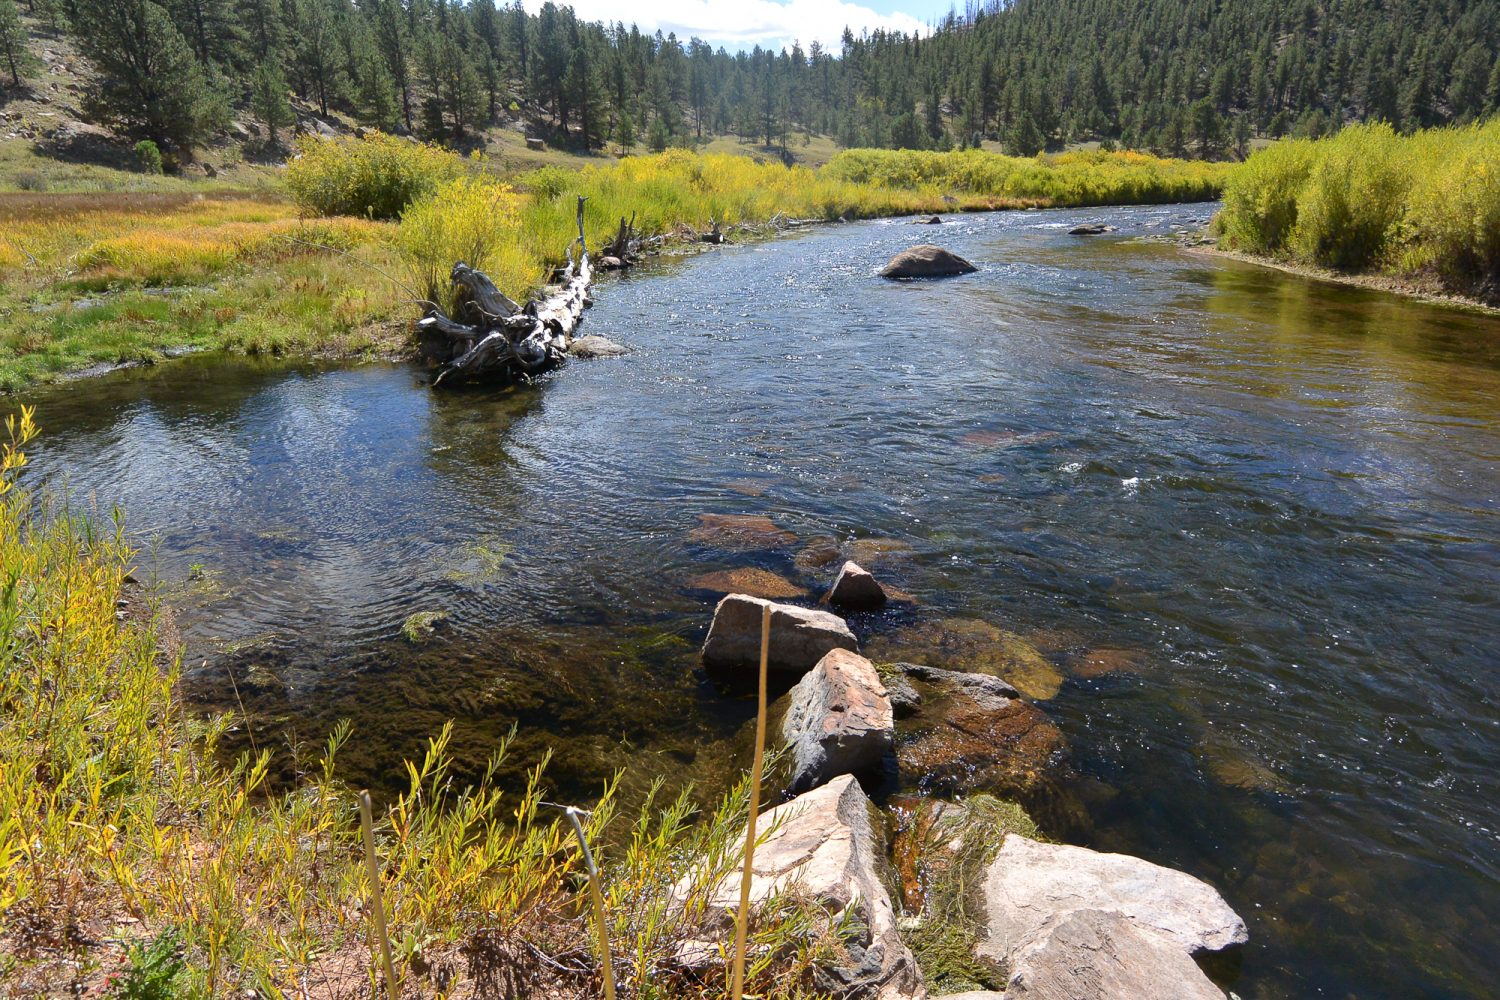 J-Hook structure in the Upper South Platte River